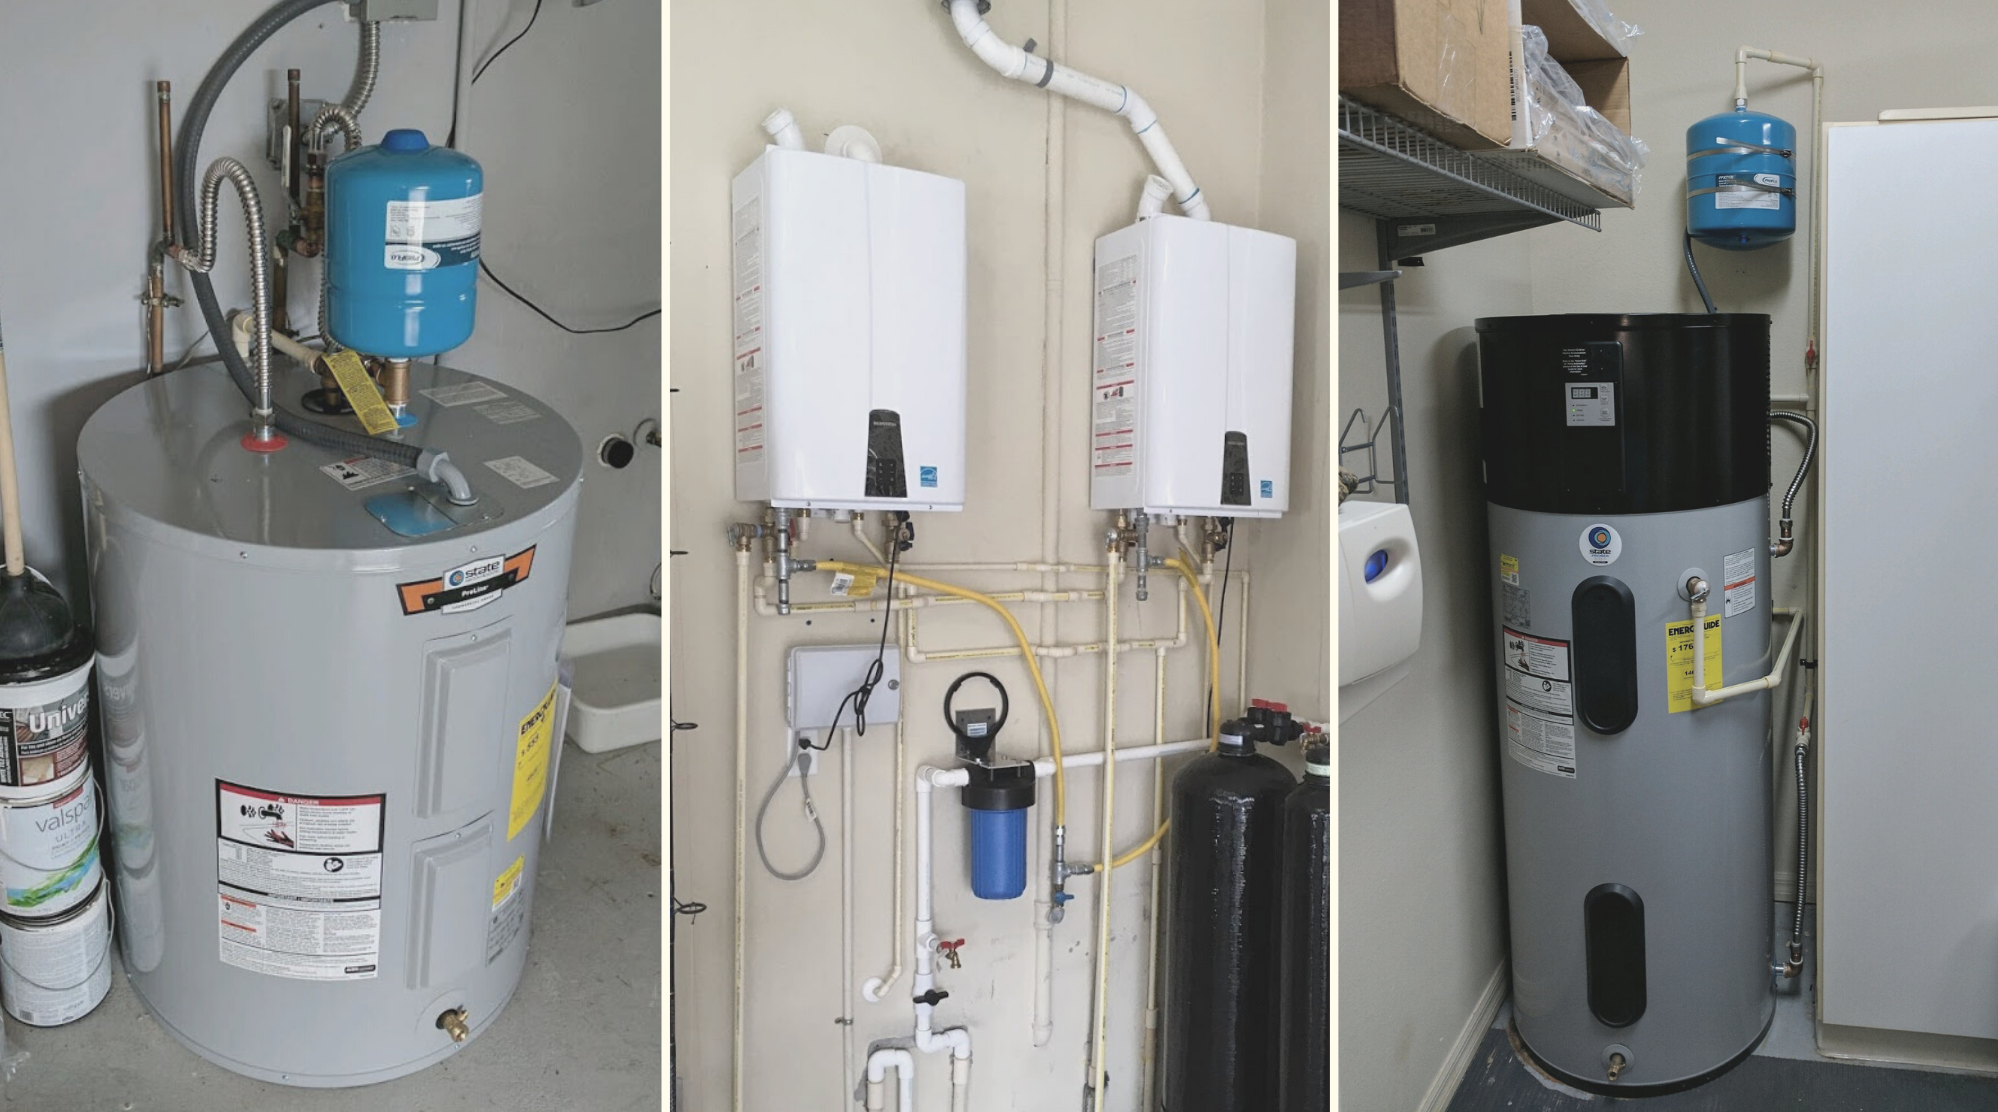 Matt's Water Heater Repair and Installation